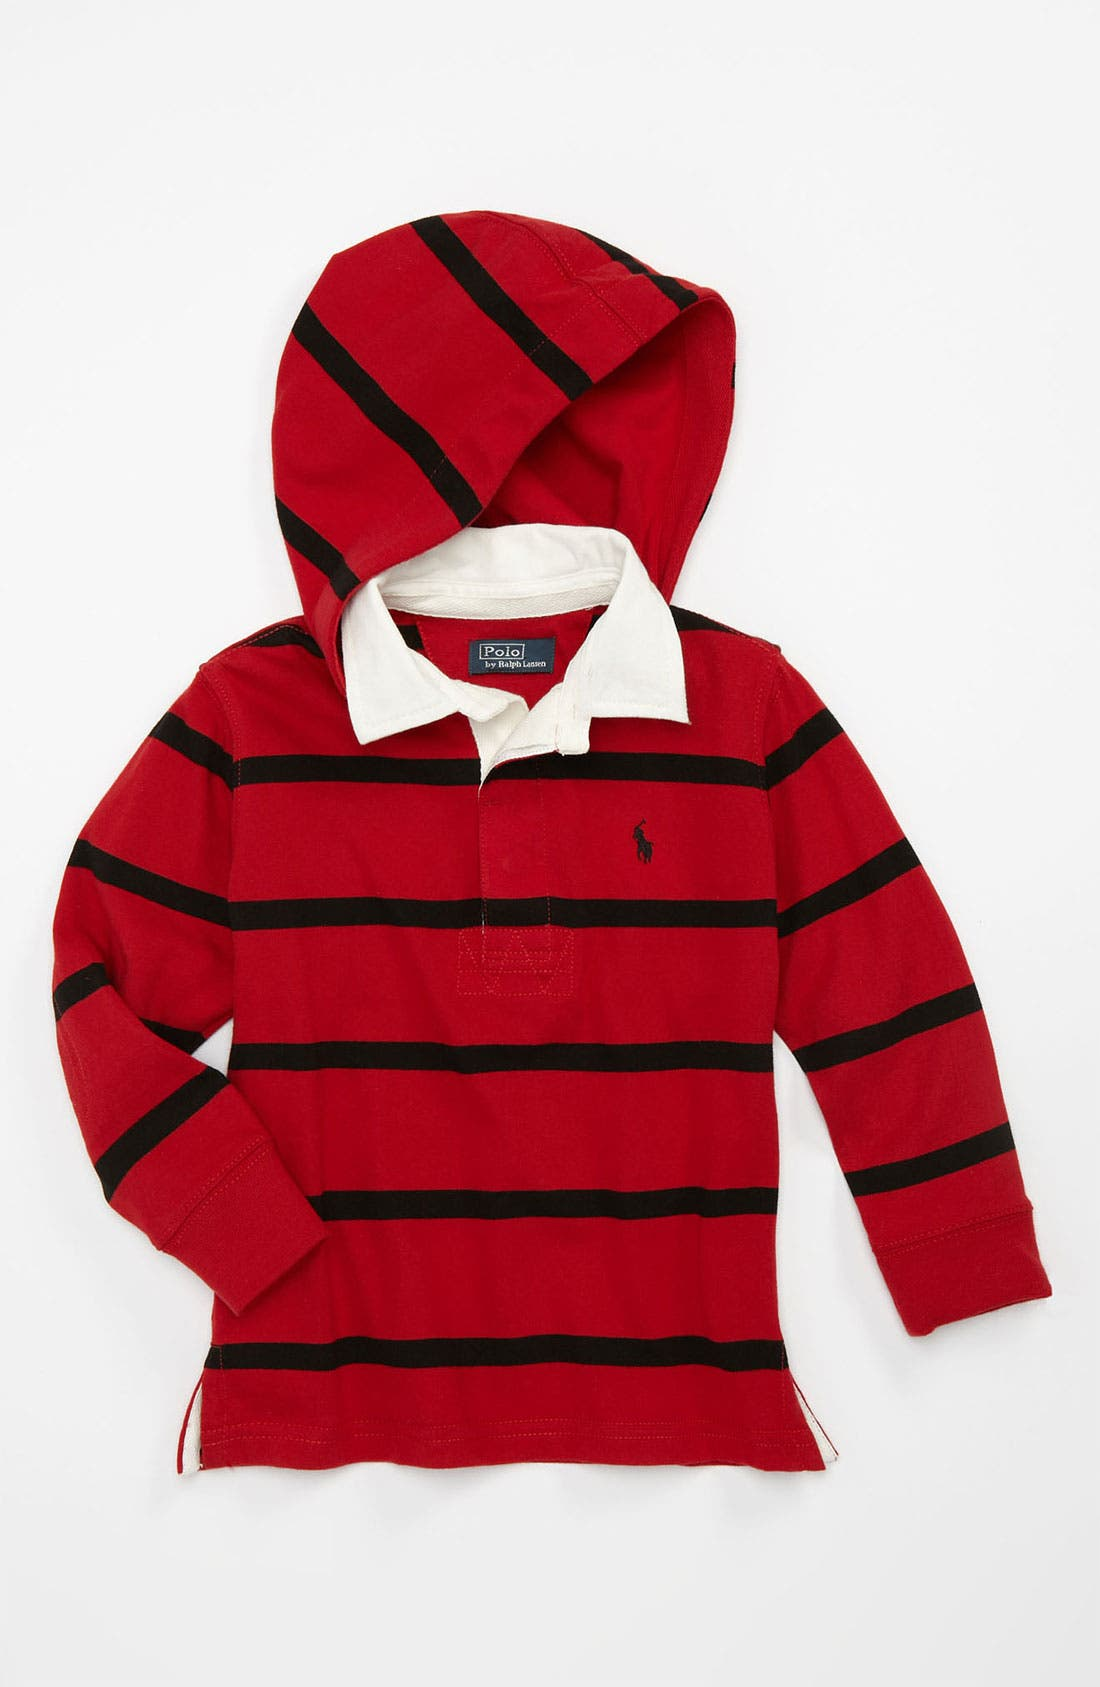 Alternate Image 1 Selected - Ralph Lauren Hooded Rugby Shirt (Toddler)